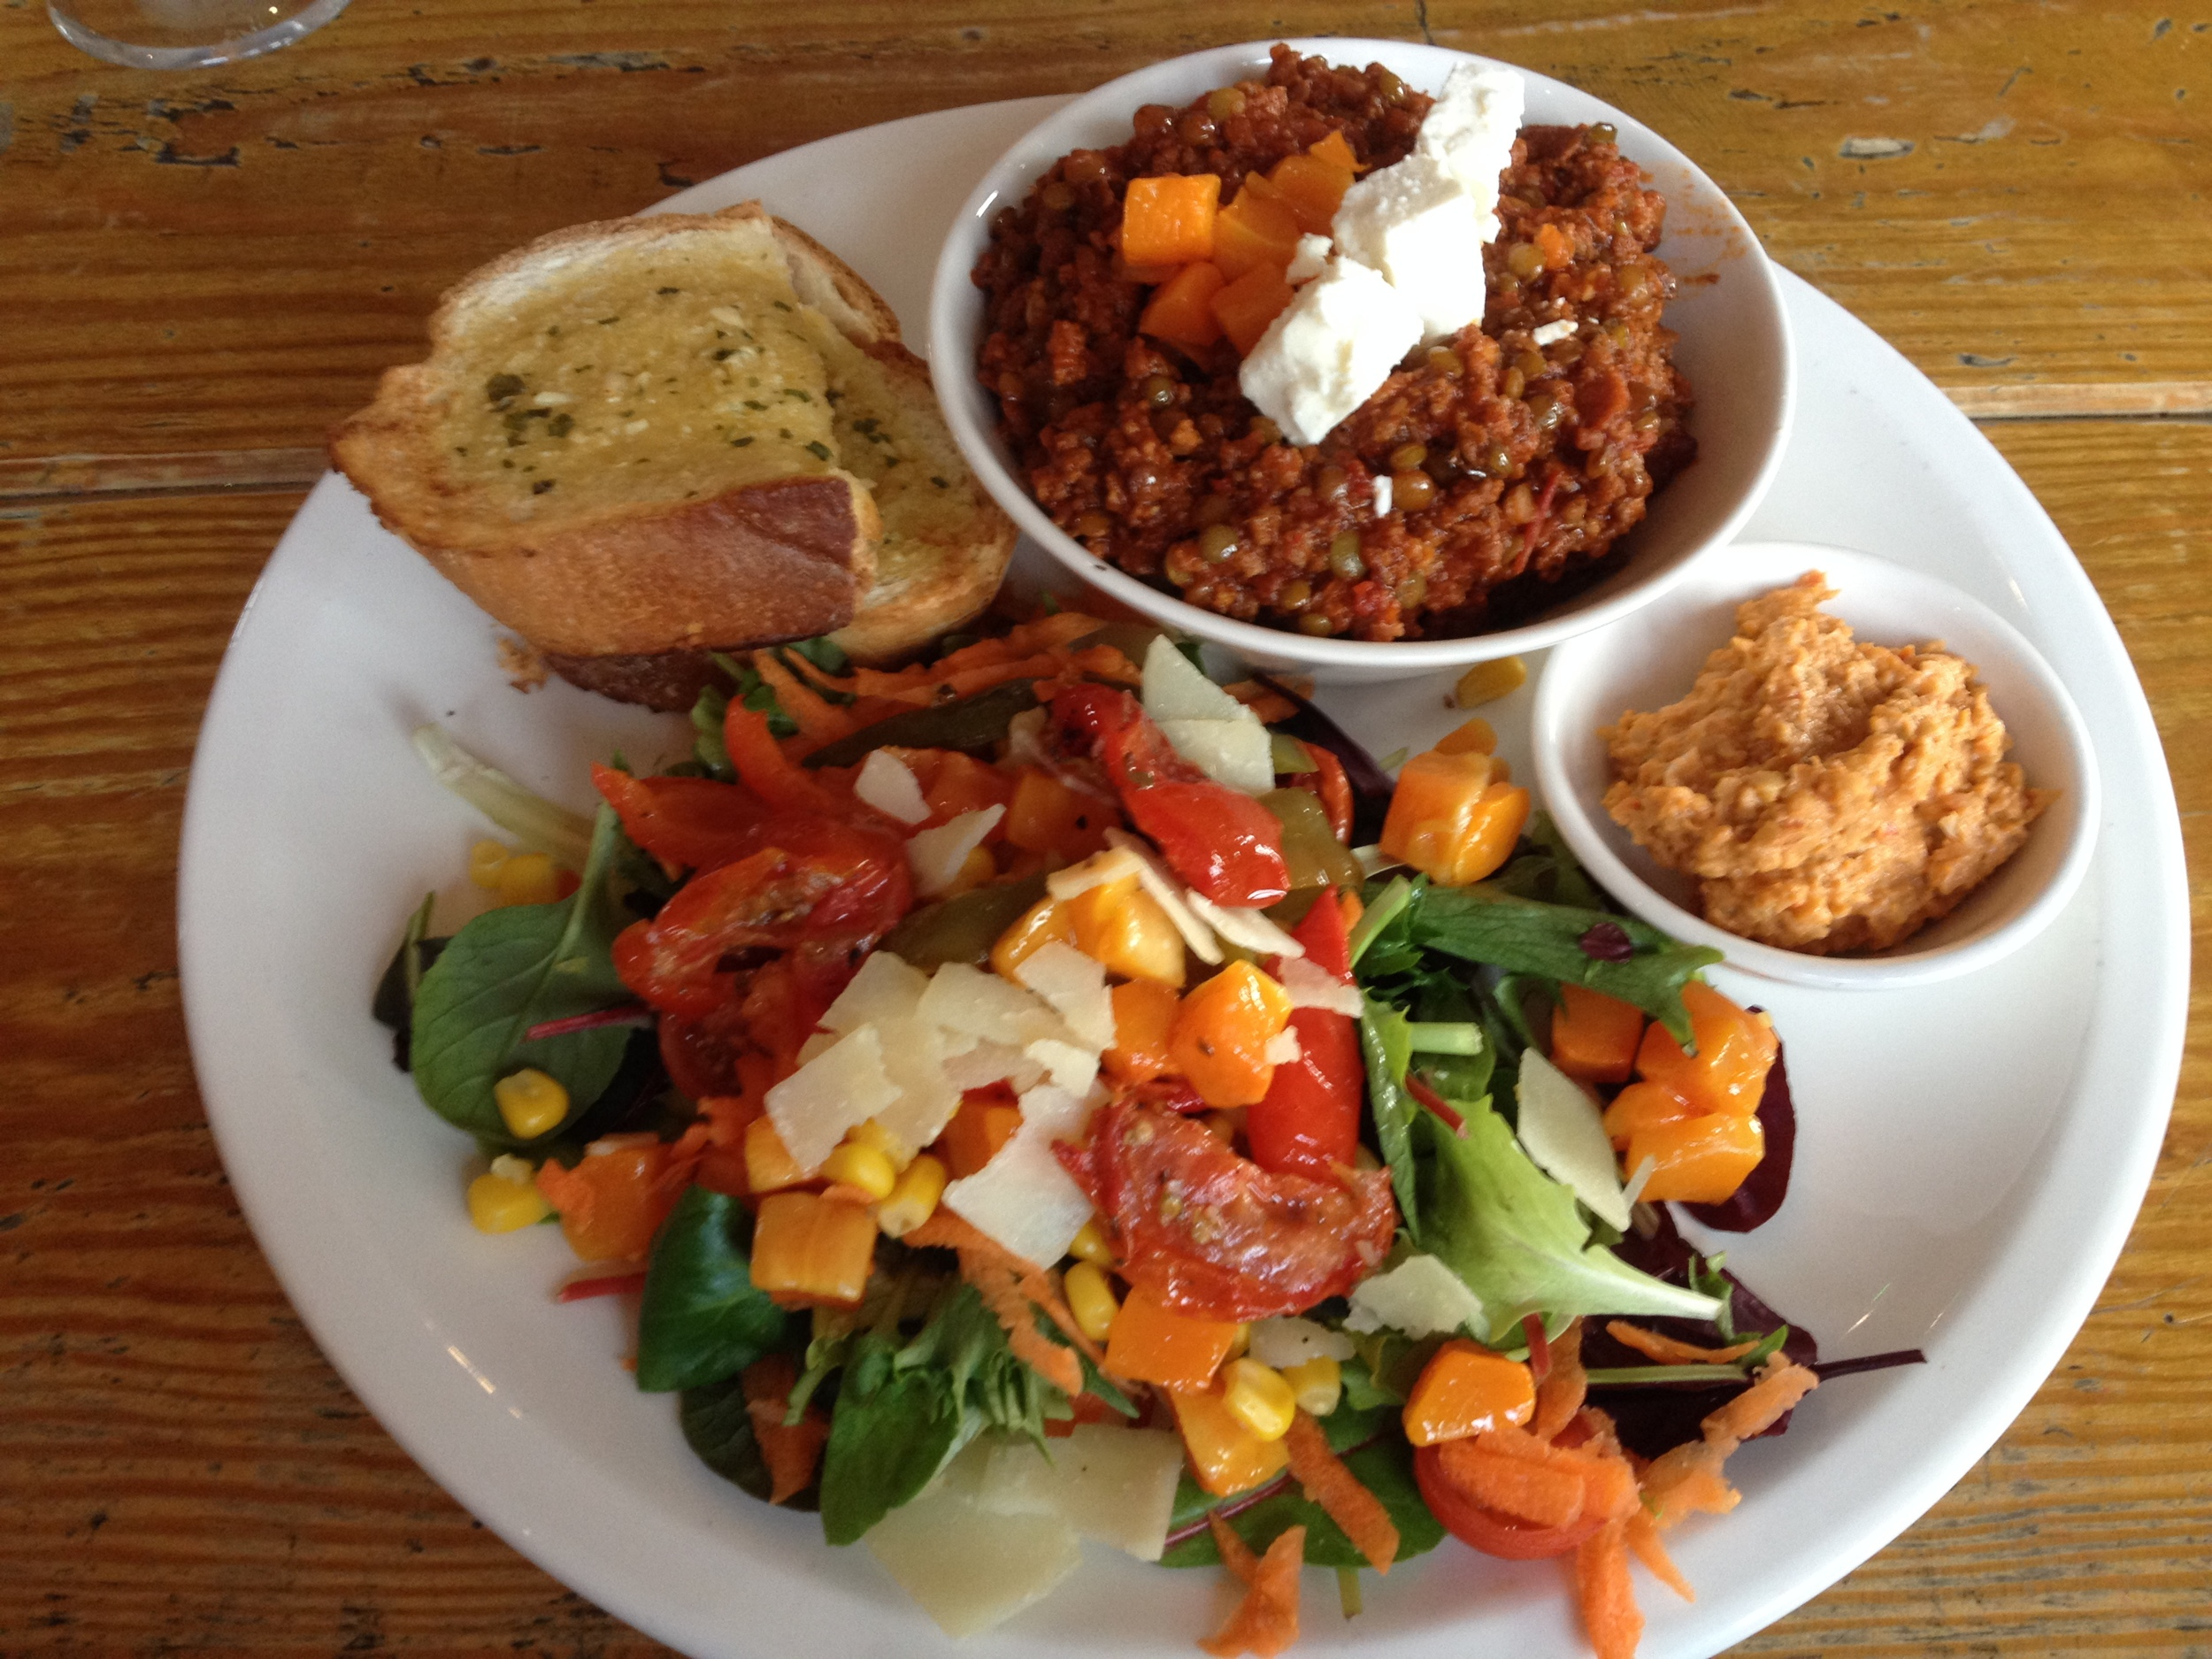 Lamb ragu, hummus, garlic bread - and a good salad! (photo by Paul Forrester)